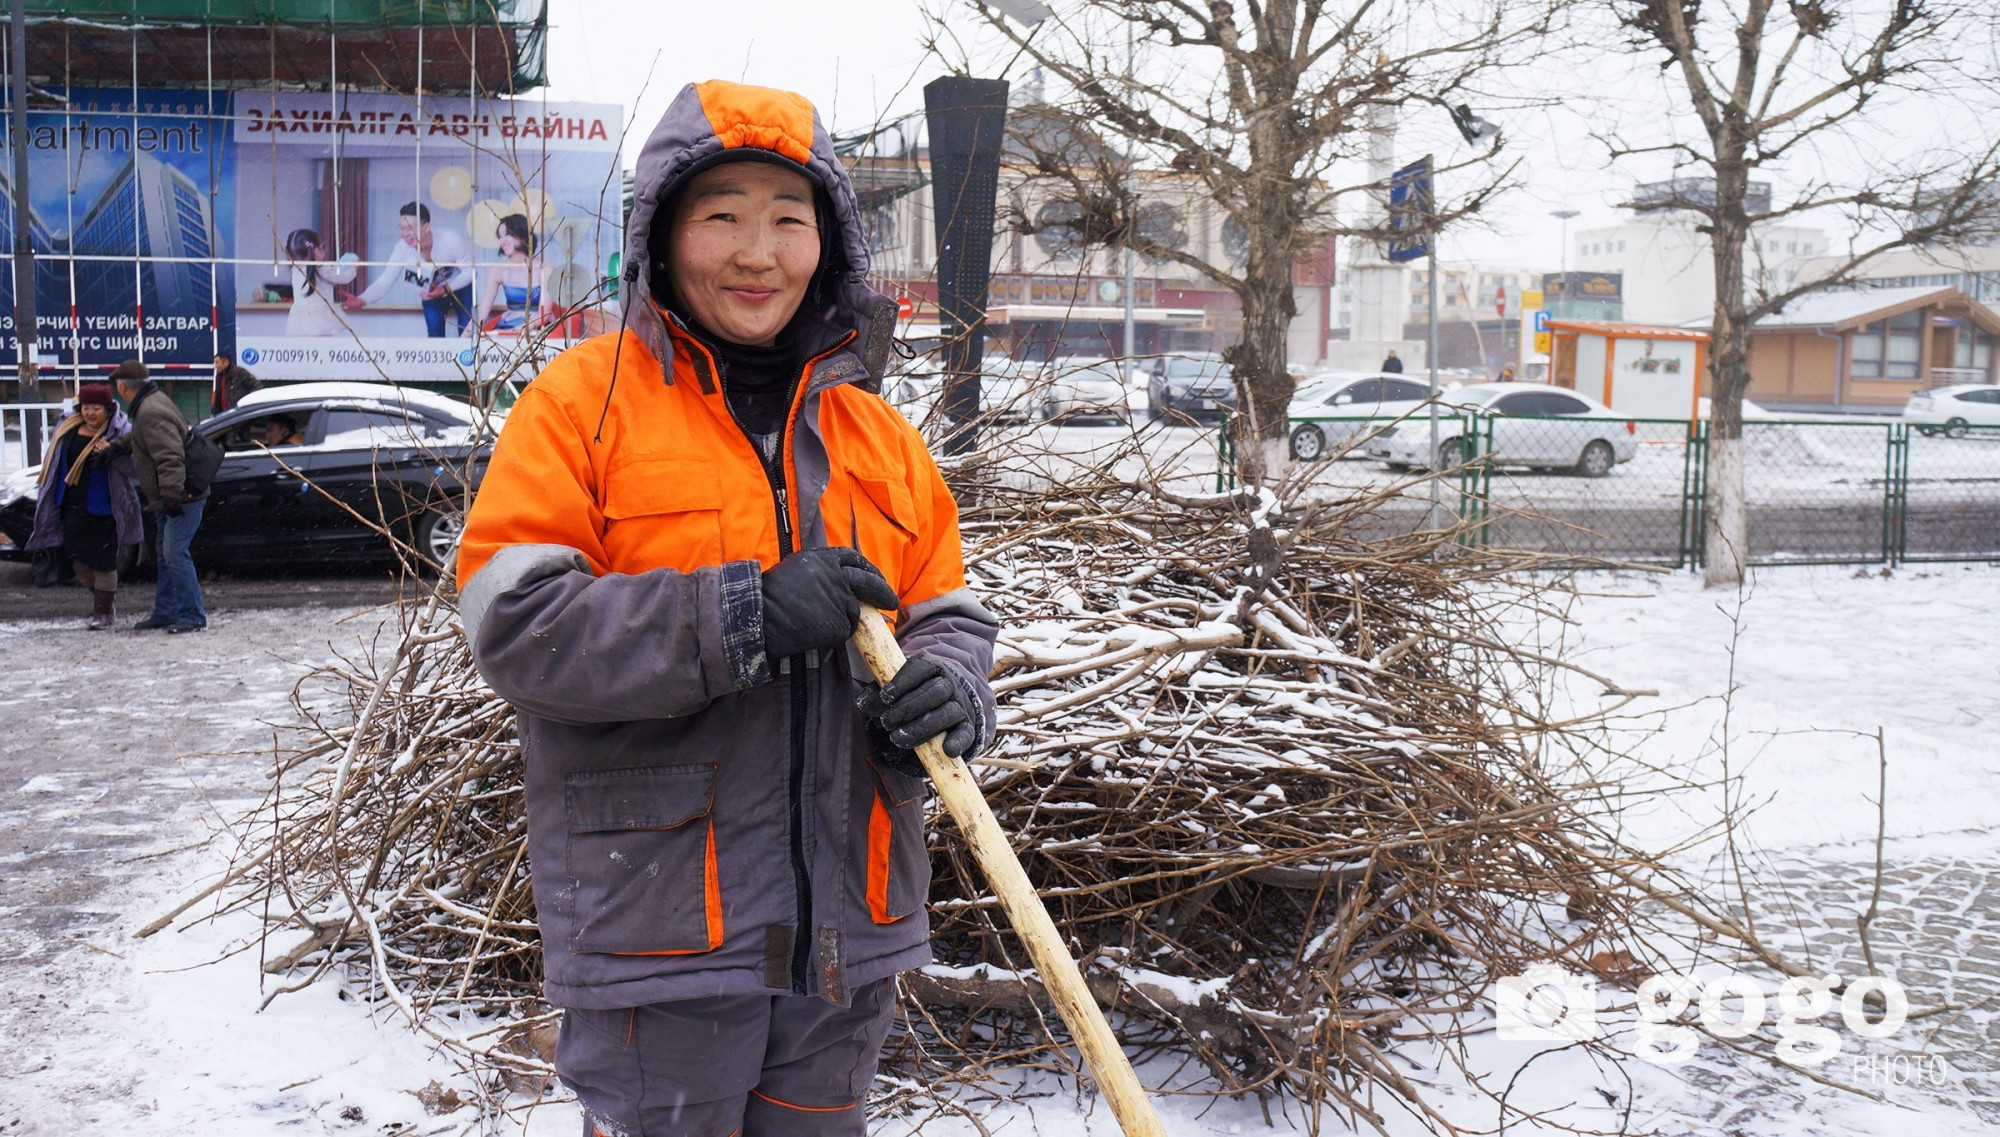 M.Altantuya works at City Landscaping company. She wants drivers to become more cultured and not to throw trashes through their windows to the lawn.